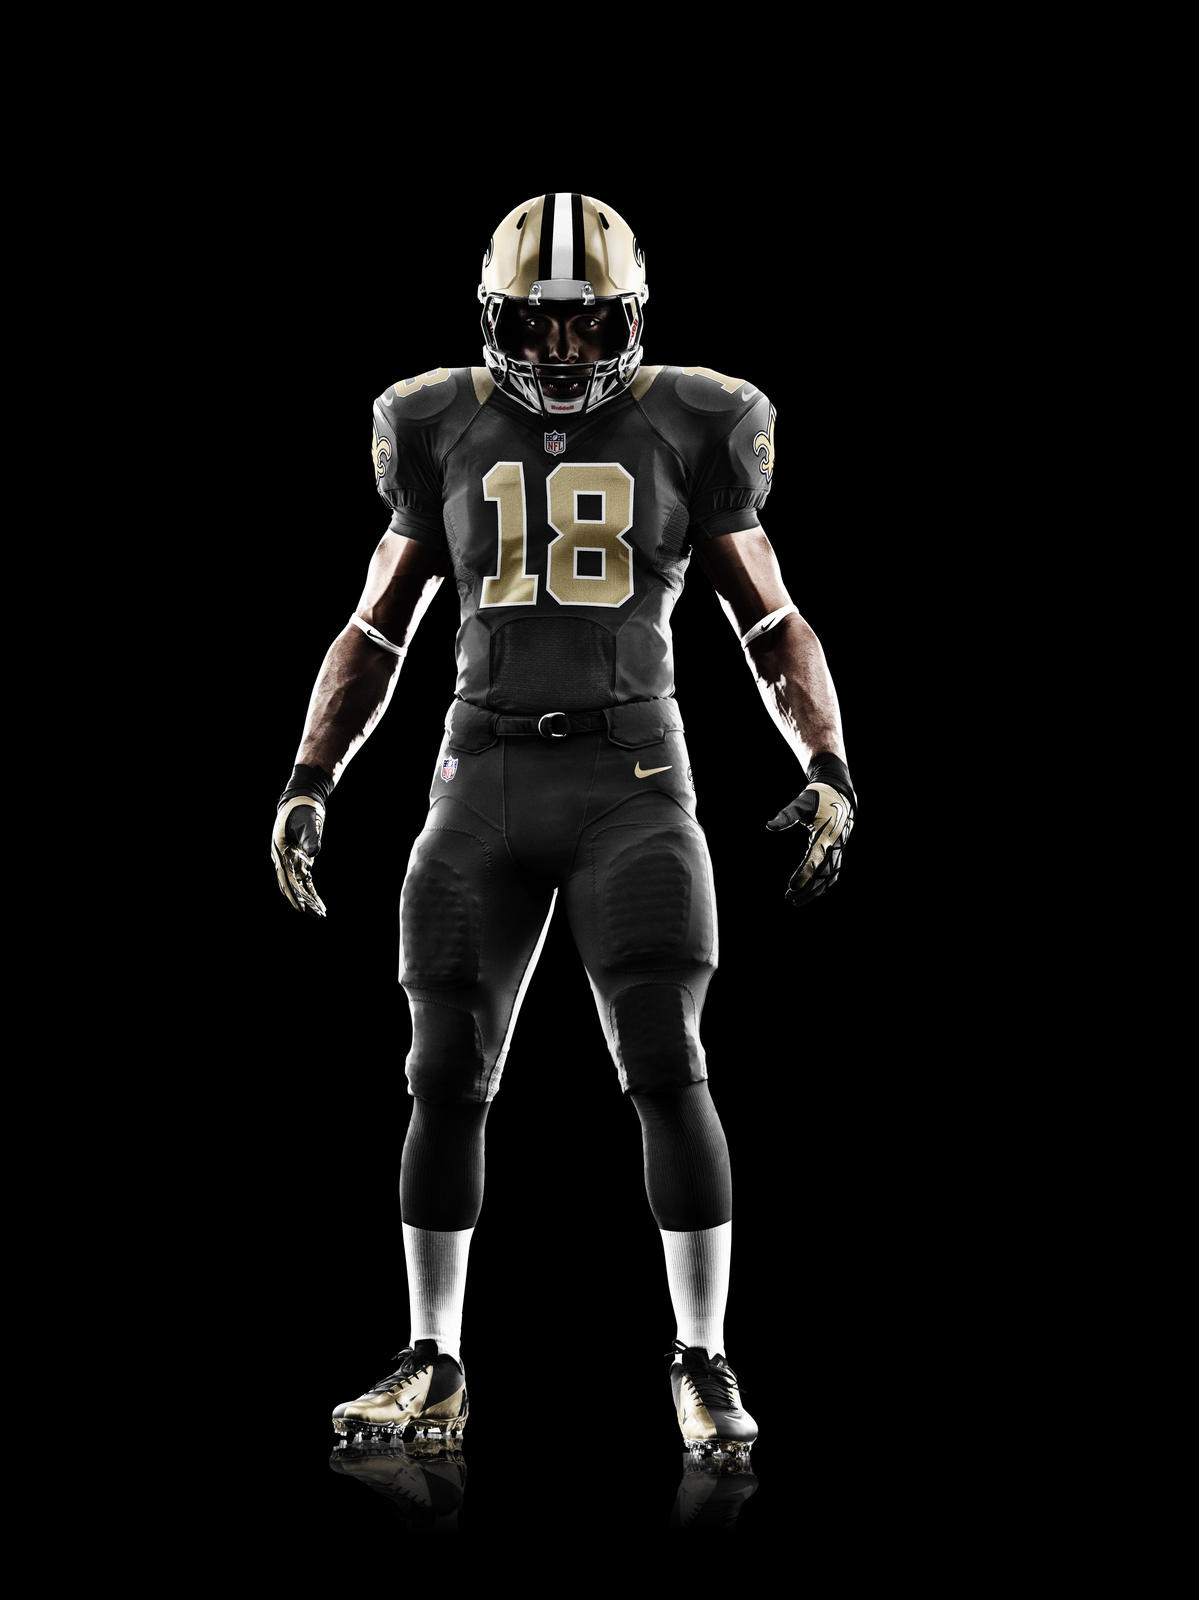 Discount youth 2012 new nfl jerseys new orleans saints customized black jerseys  for sale